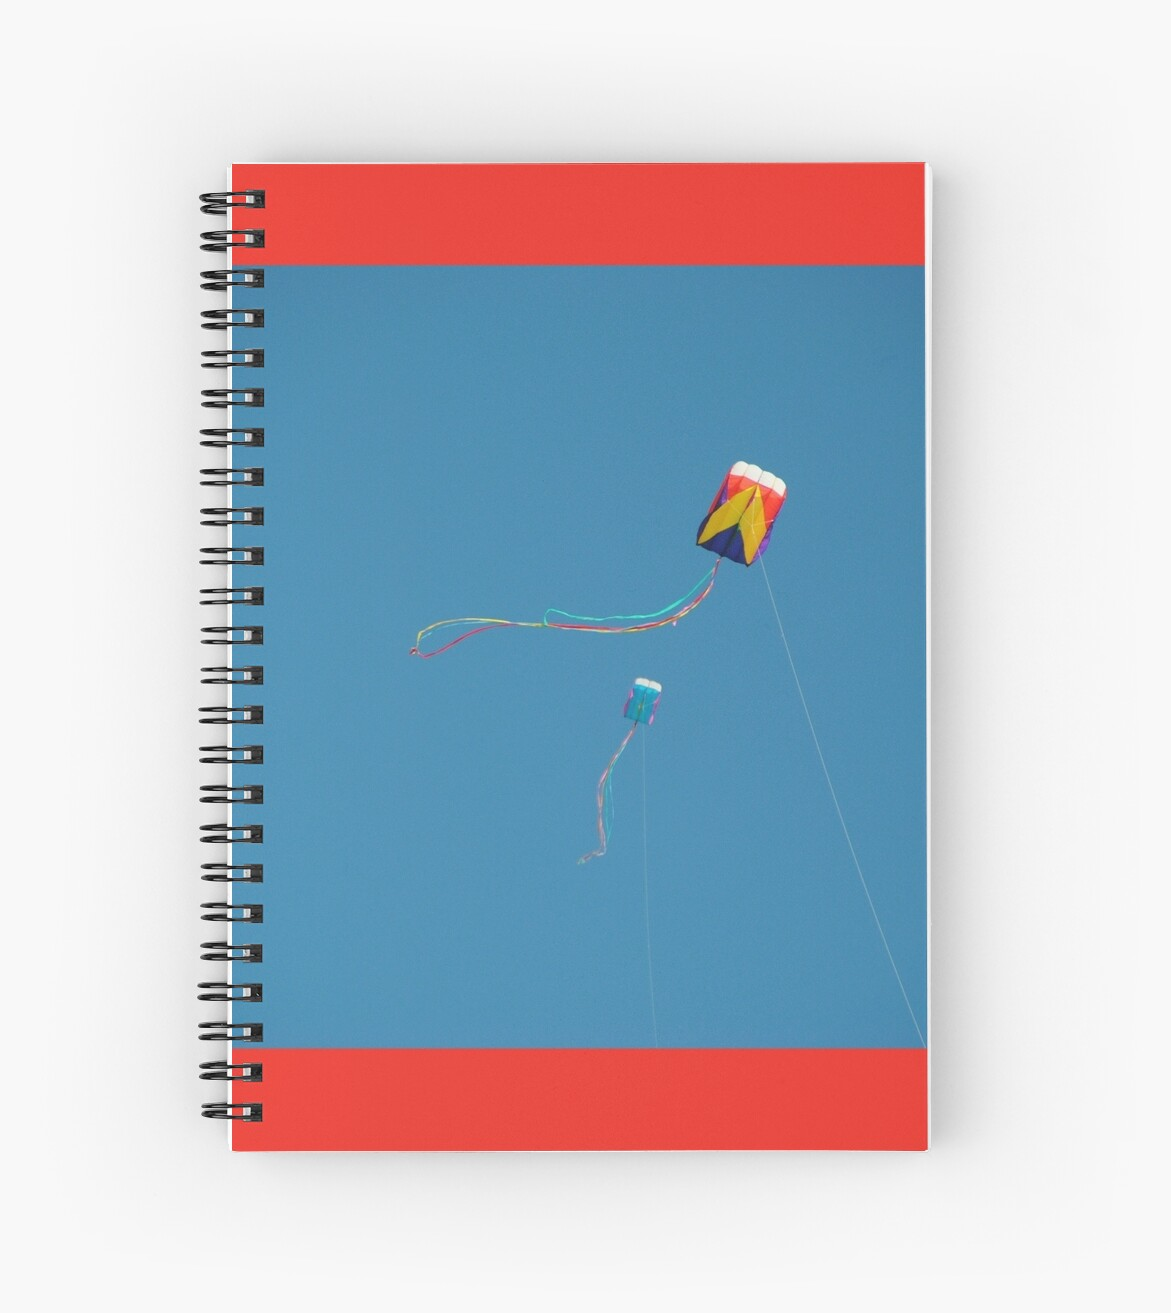 Go Fly A Kite IV by Christopher Colletta